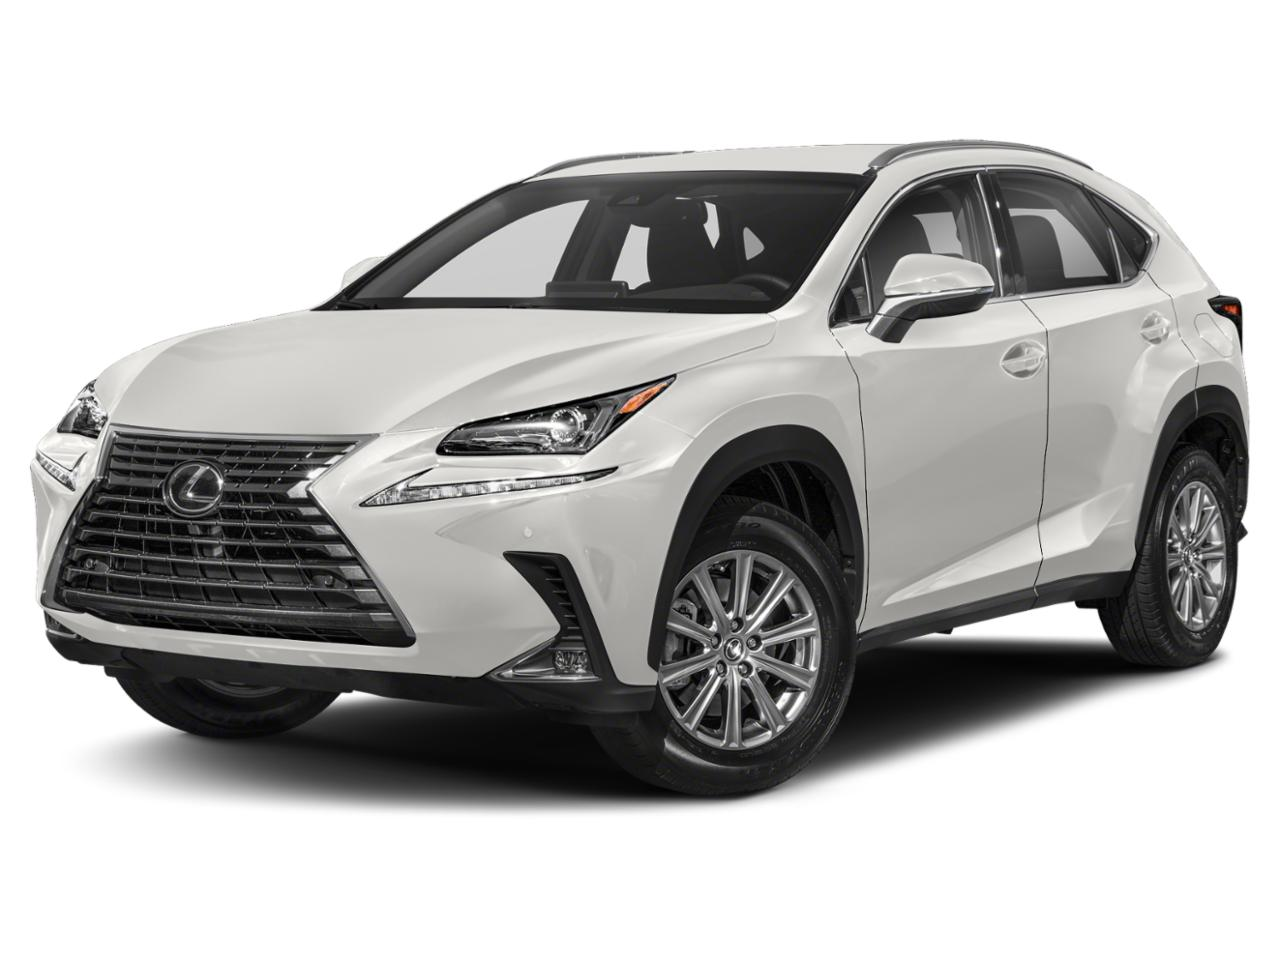 New 2020 Lexus NX Eminent White Pearl: Suv for Sale ...